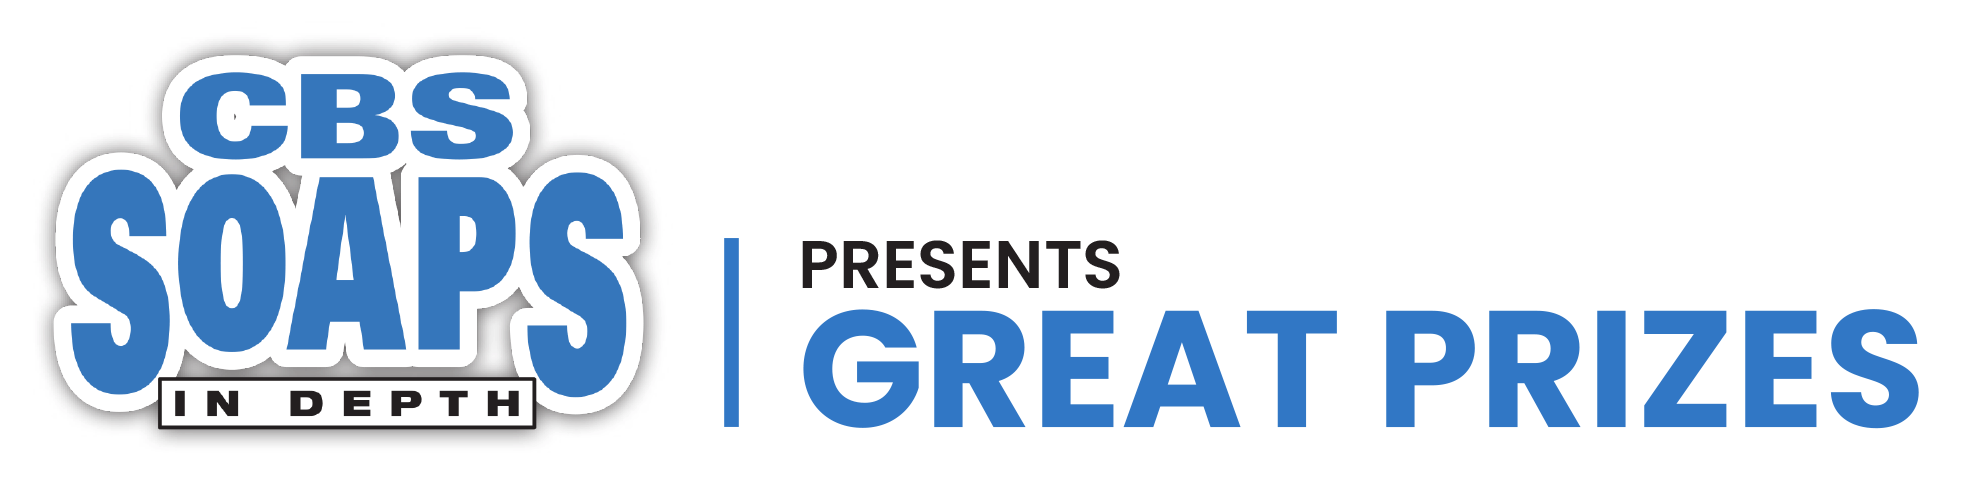 Cbs great wins logo